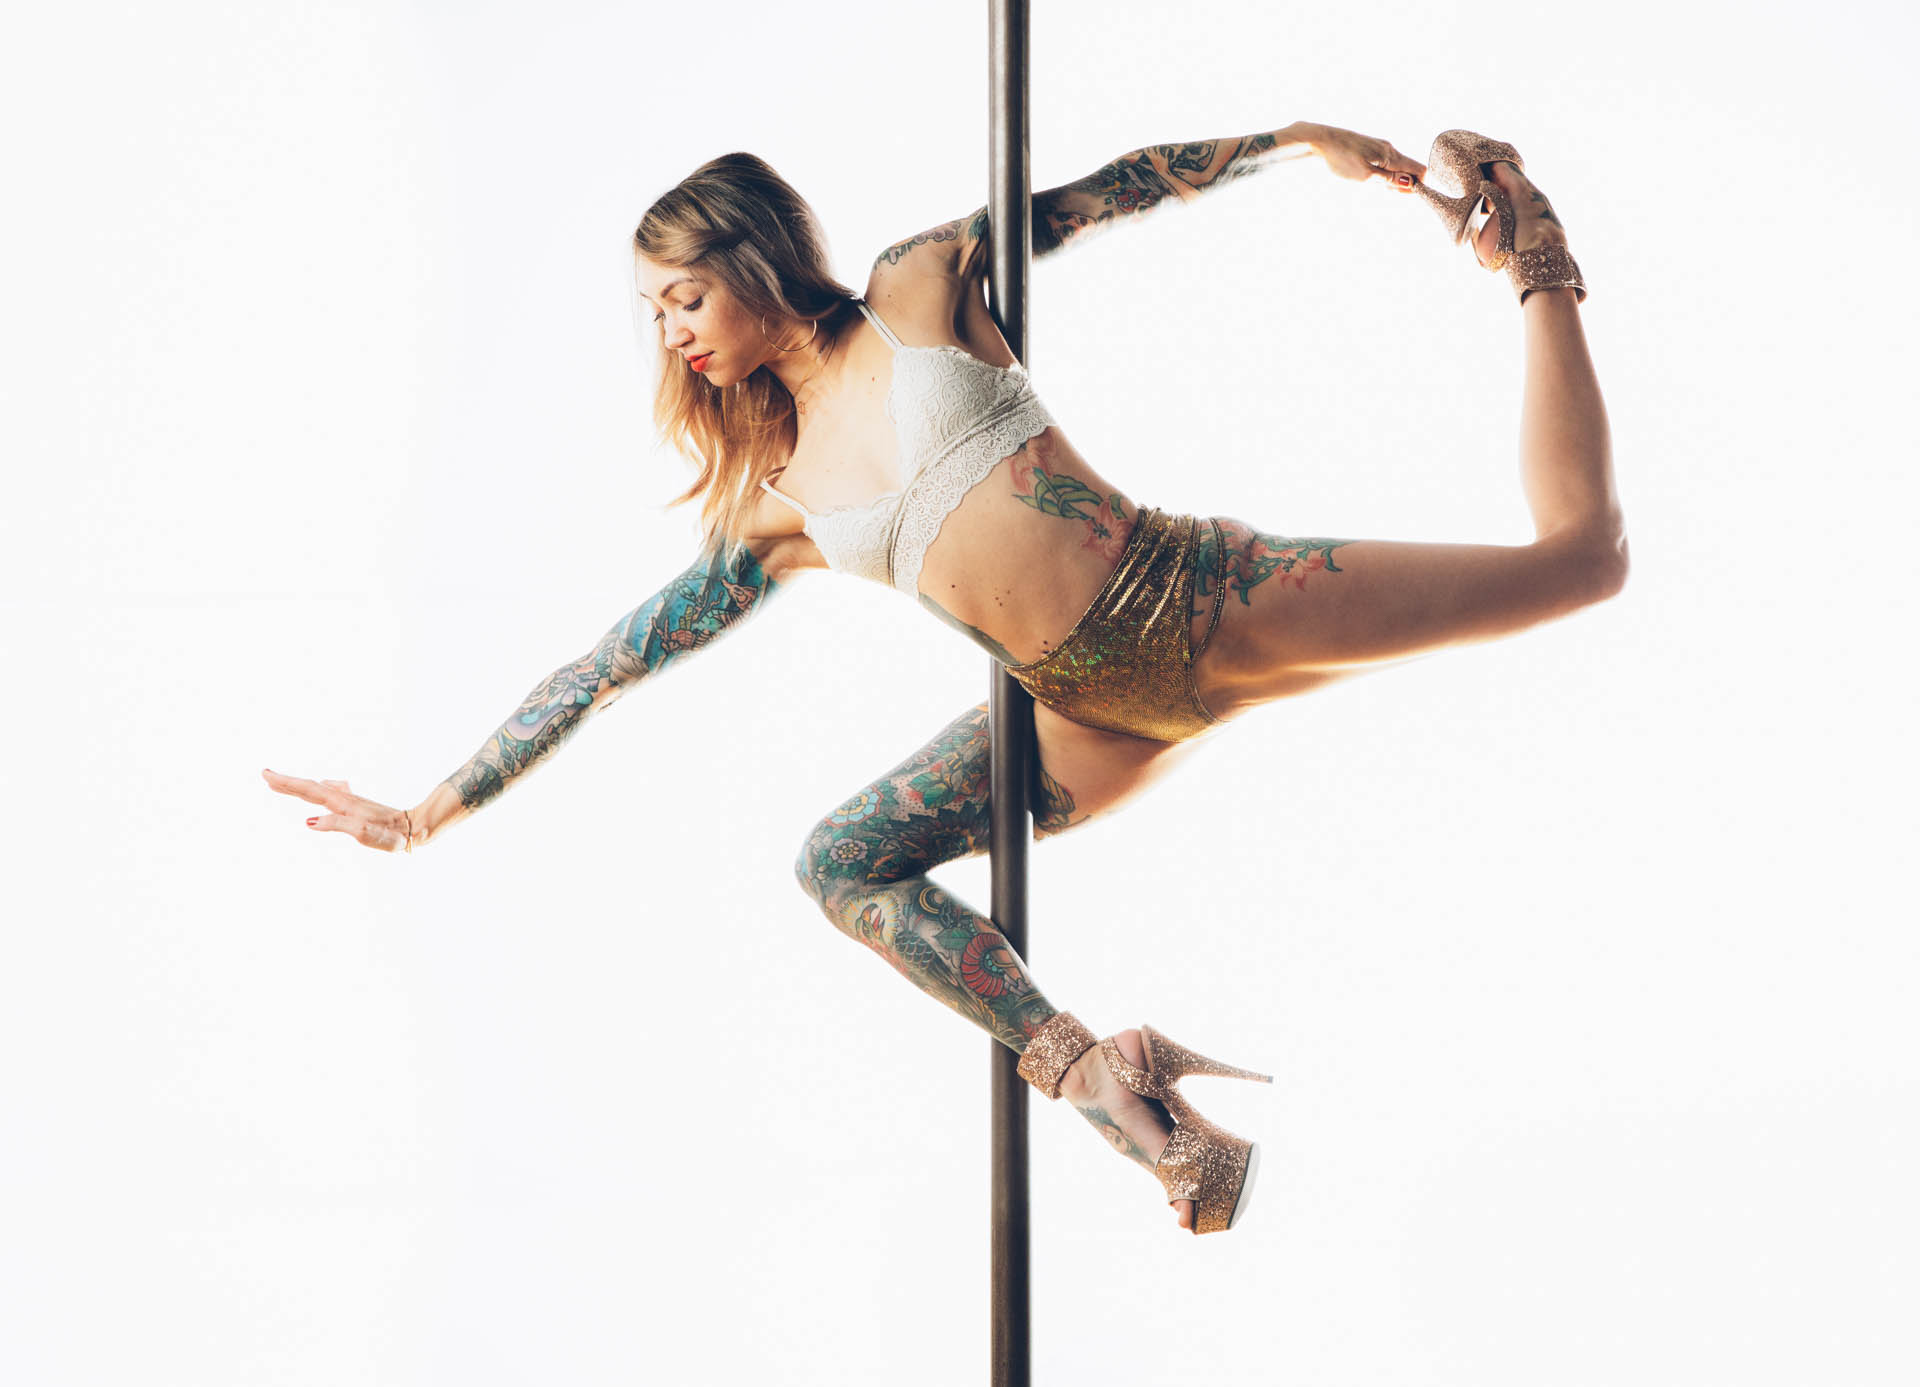 tattoo-girl-pole-dancing-high-heels.JPG